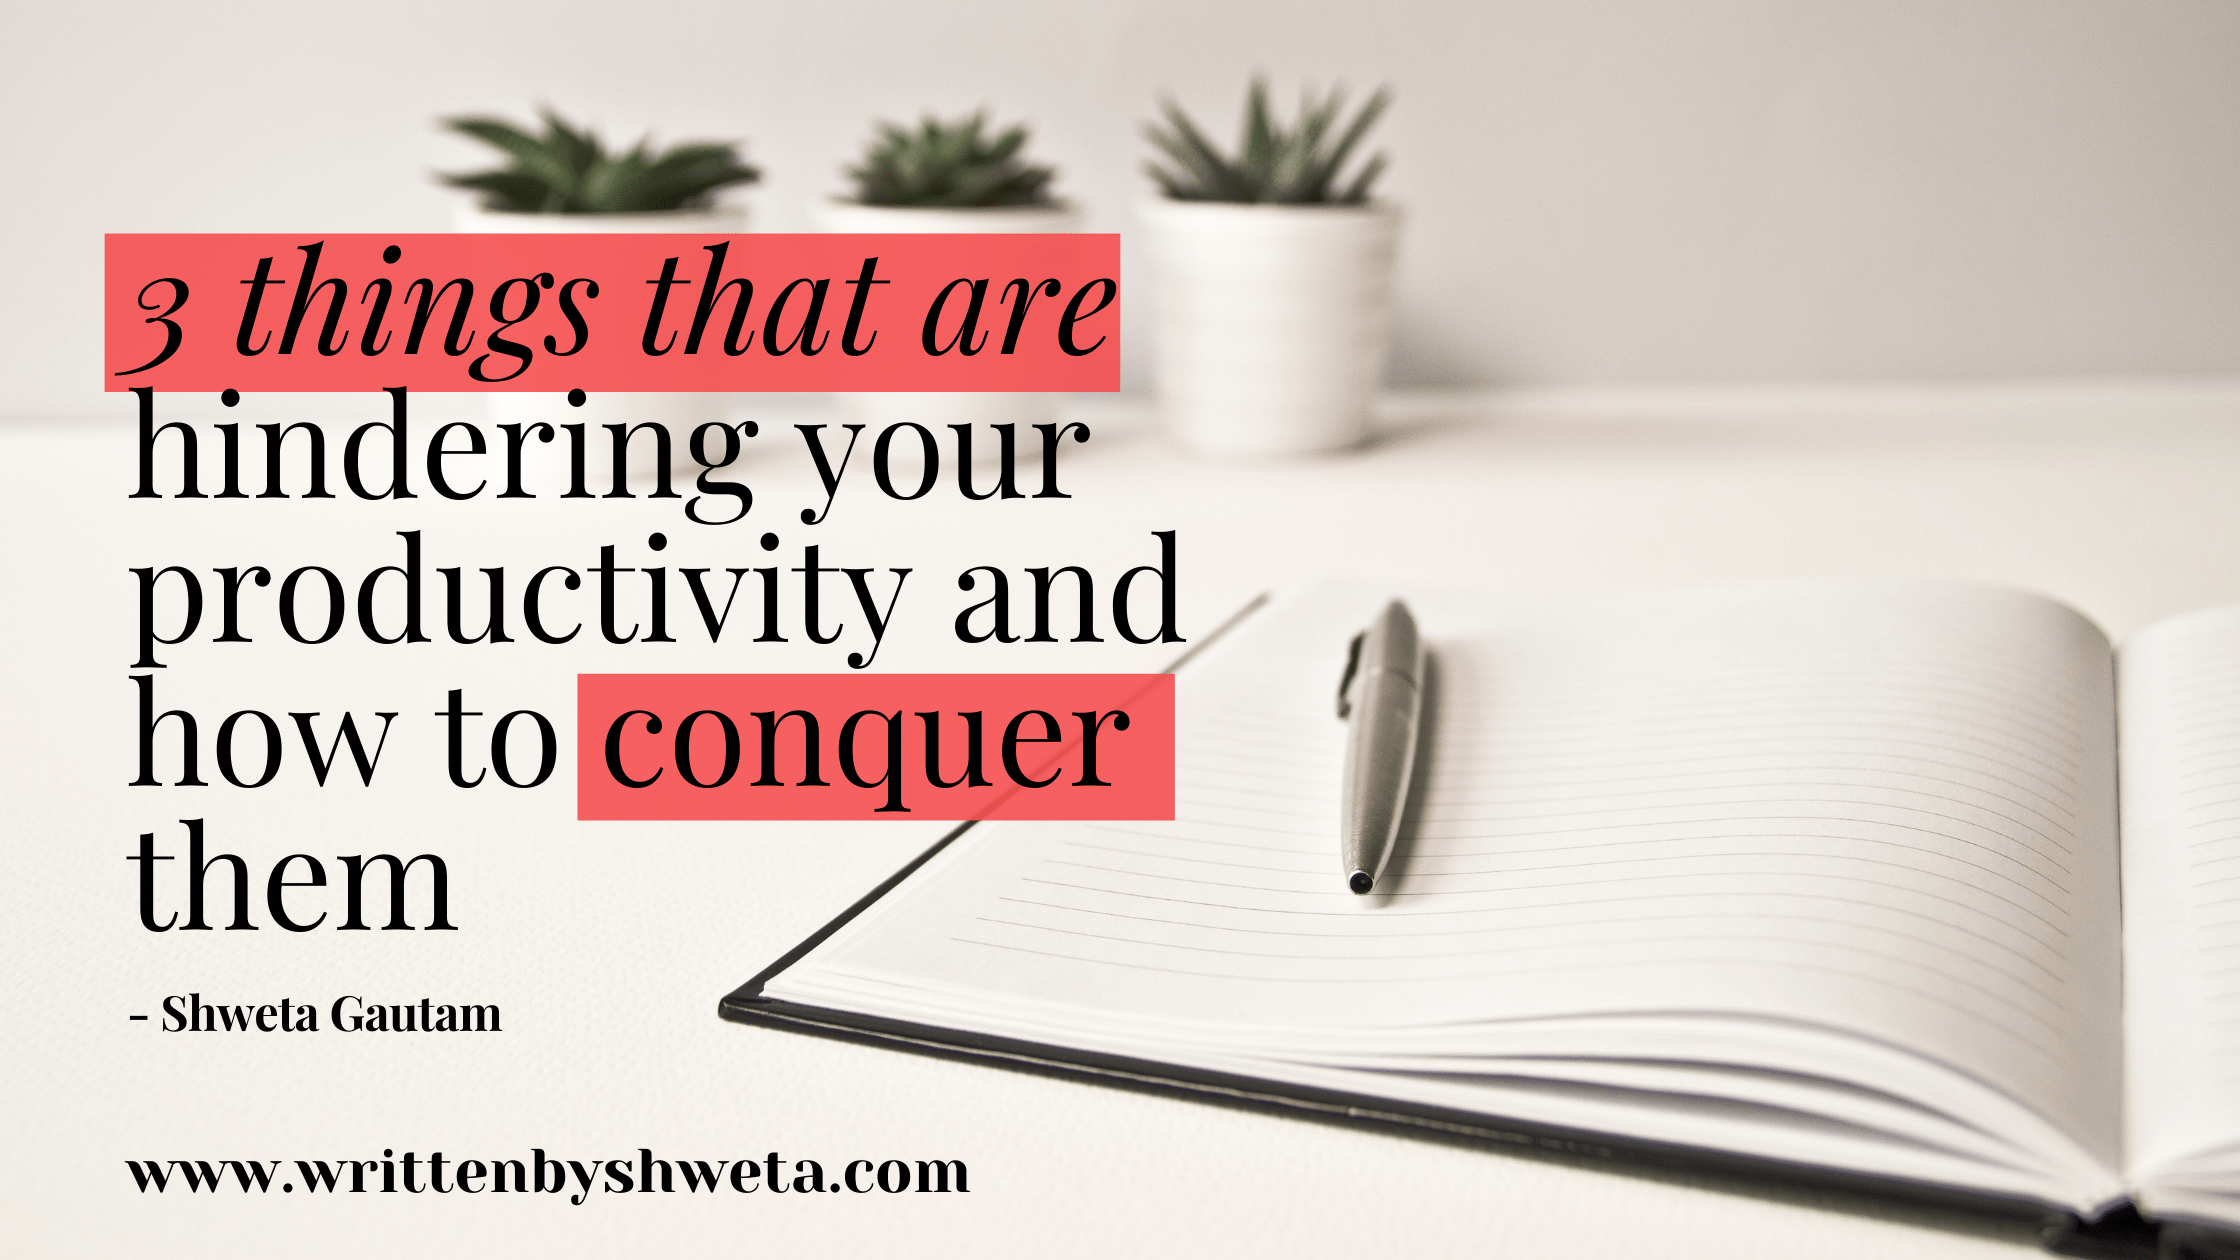 3 THINGS THAT ARE HINDERING OUR OWN PRODUCTIVITY AND HOW TO CONQUER THEM